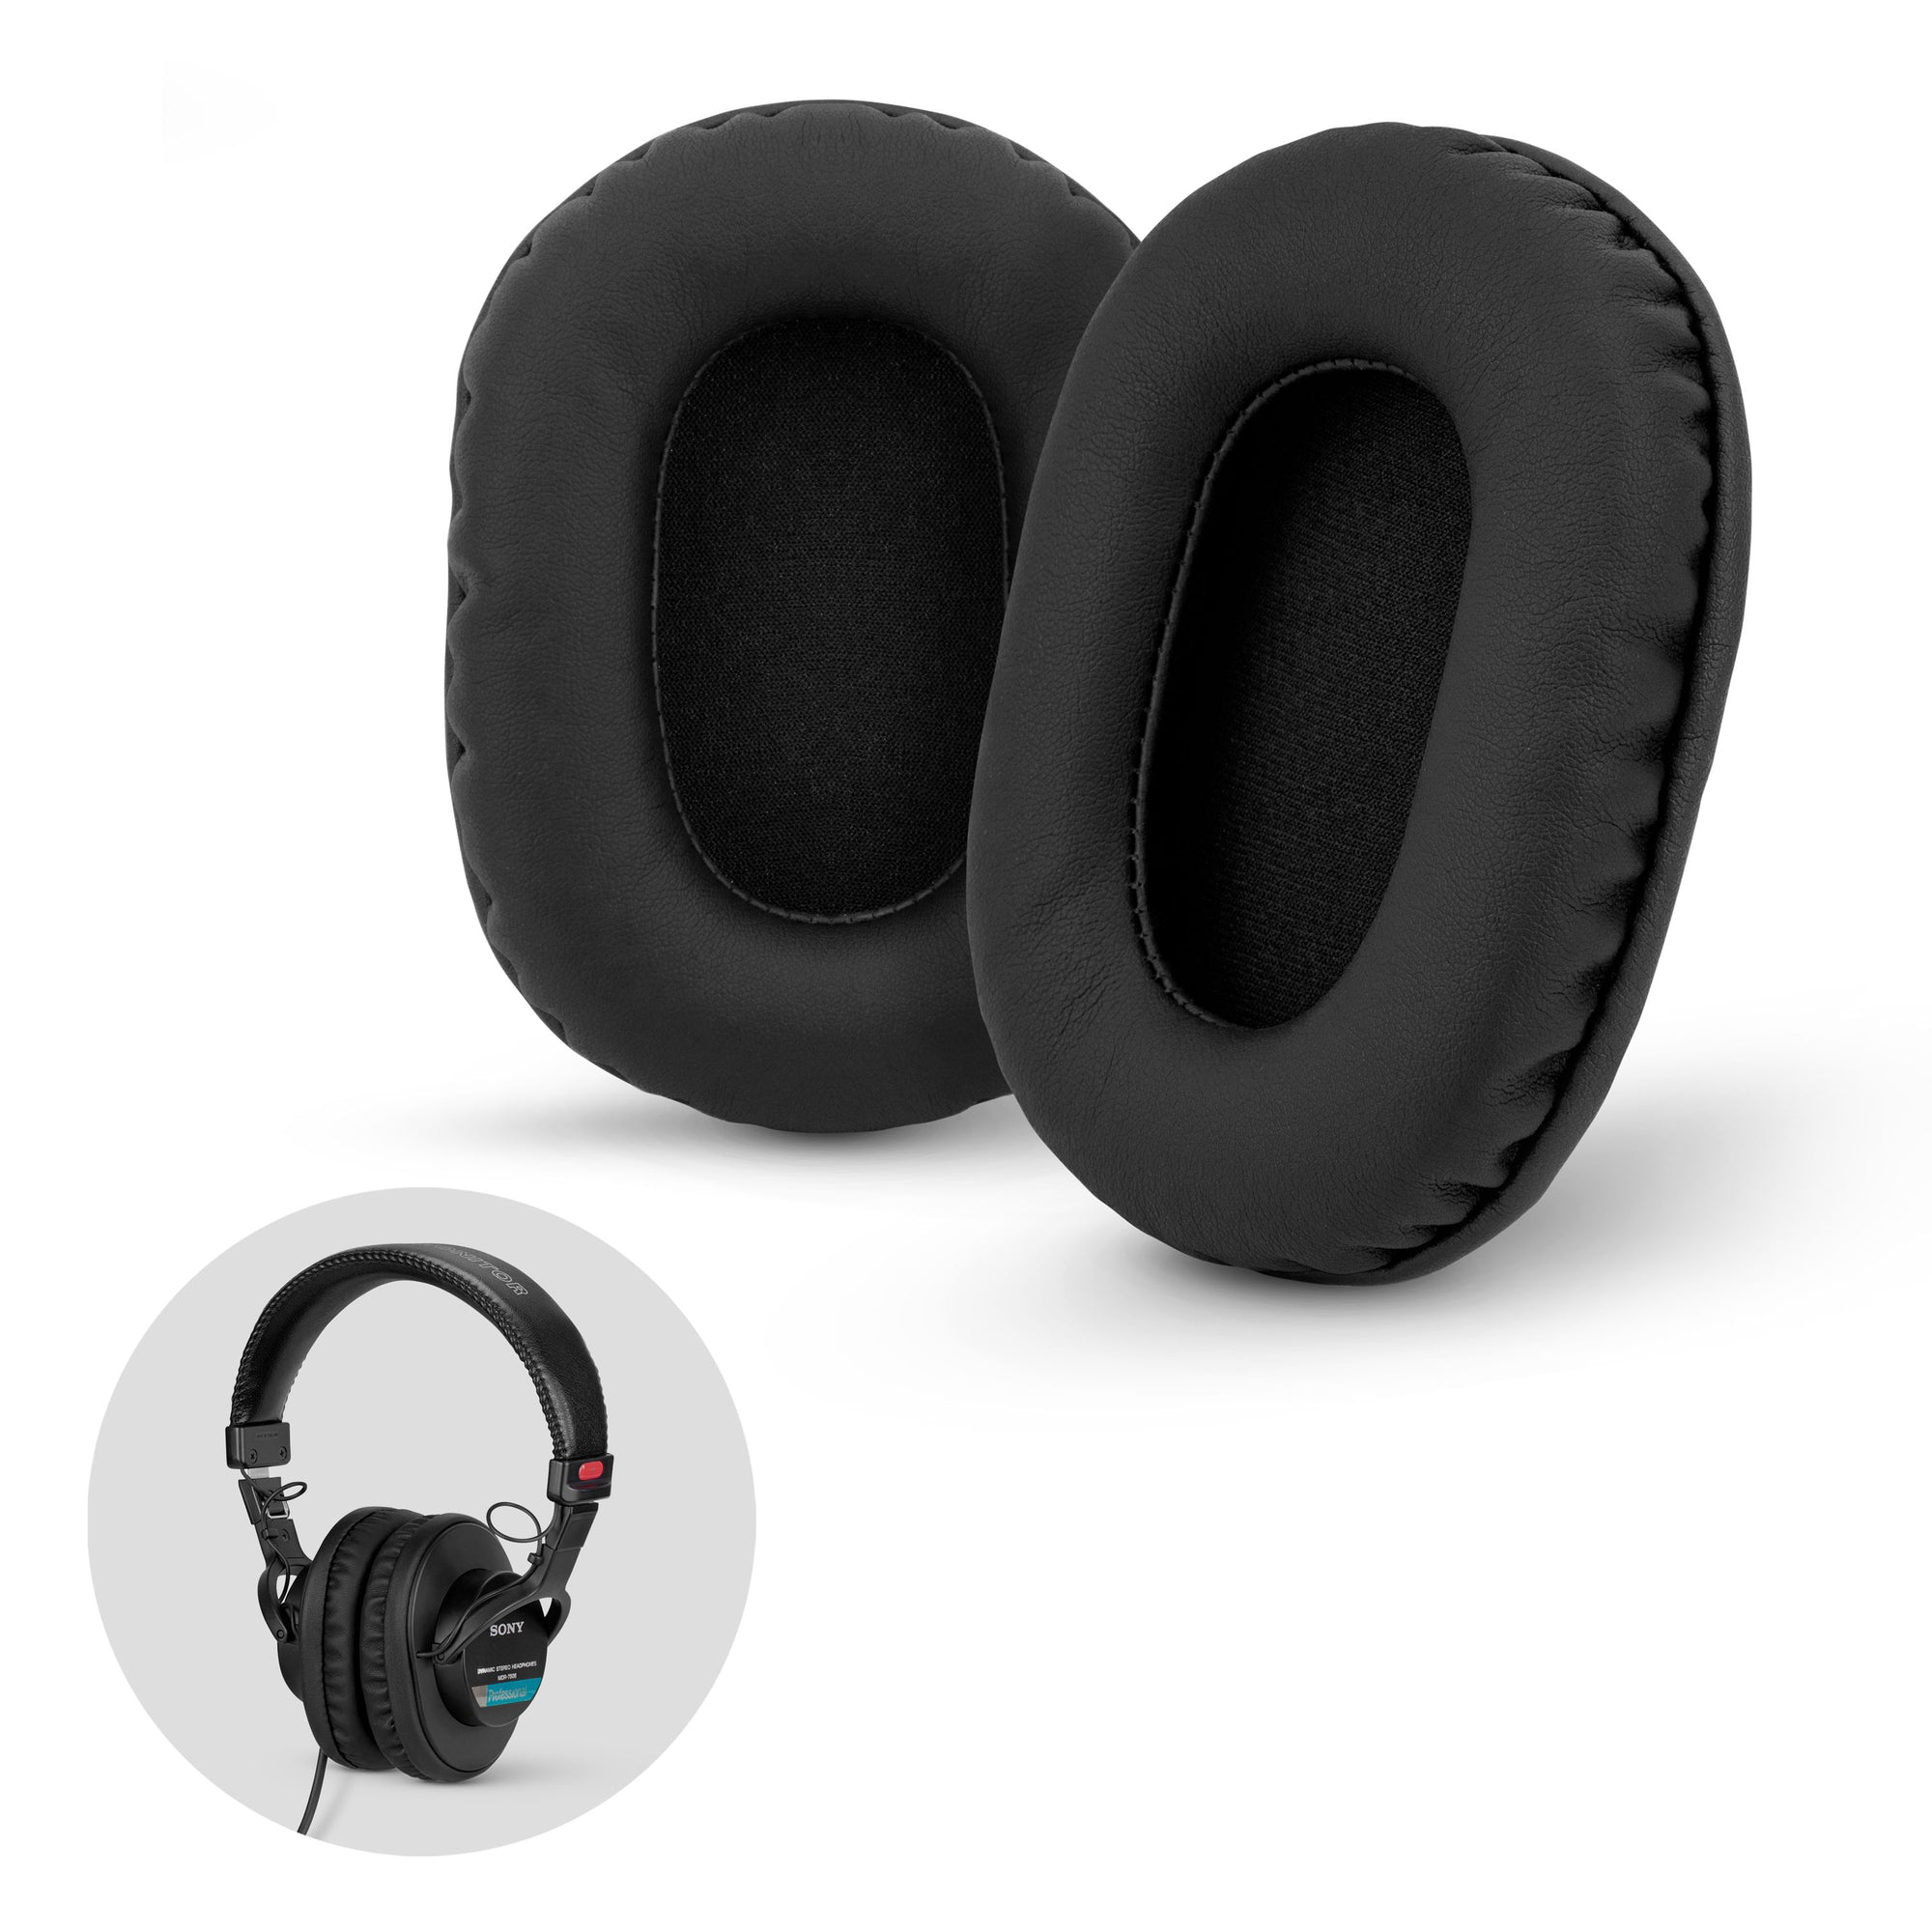 Premium SONY MDR-7506 / V6 / CD900ST Replacement Earpads